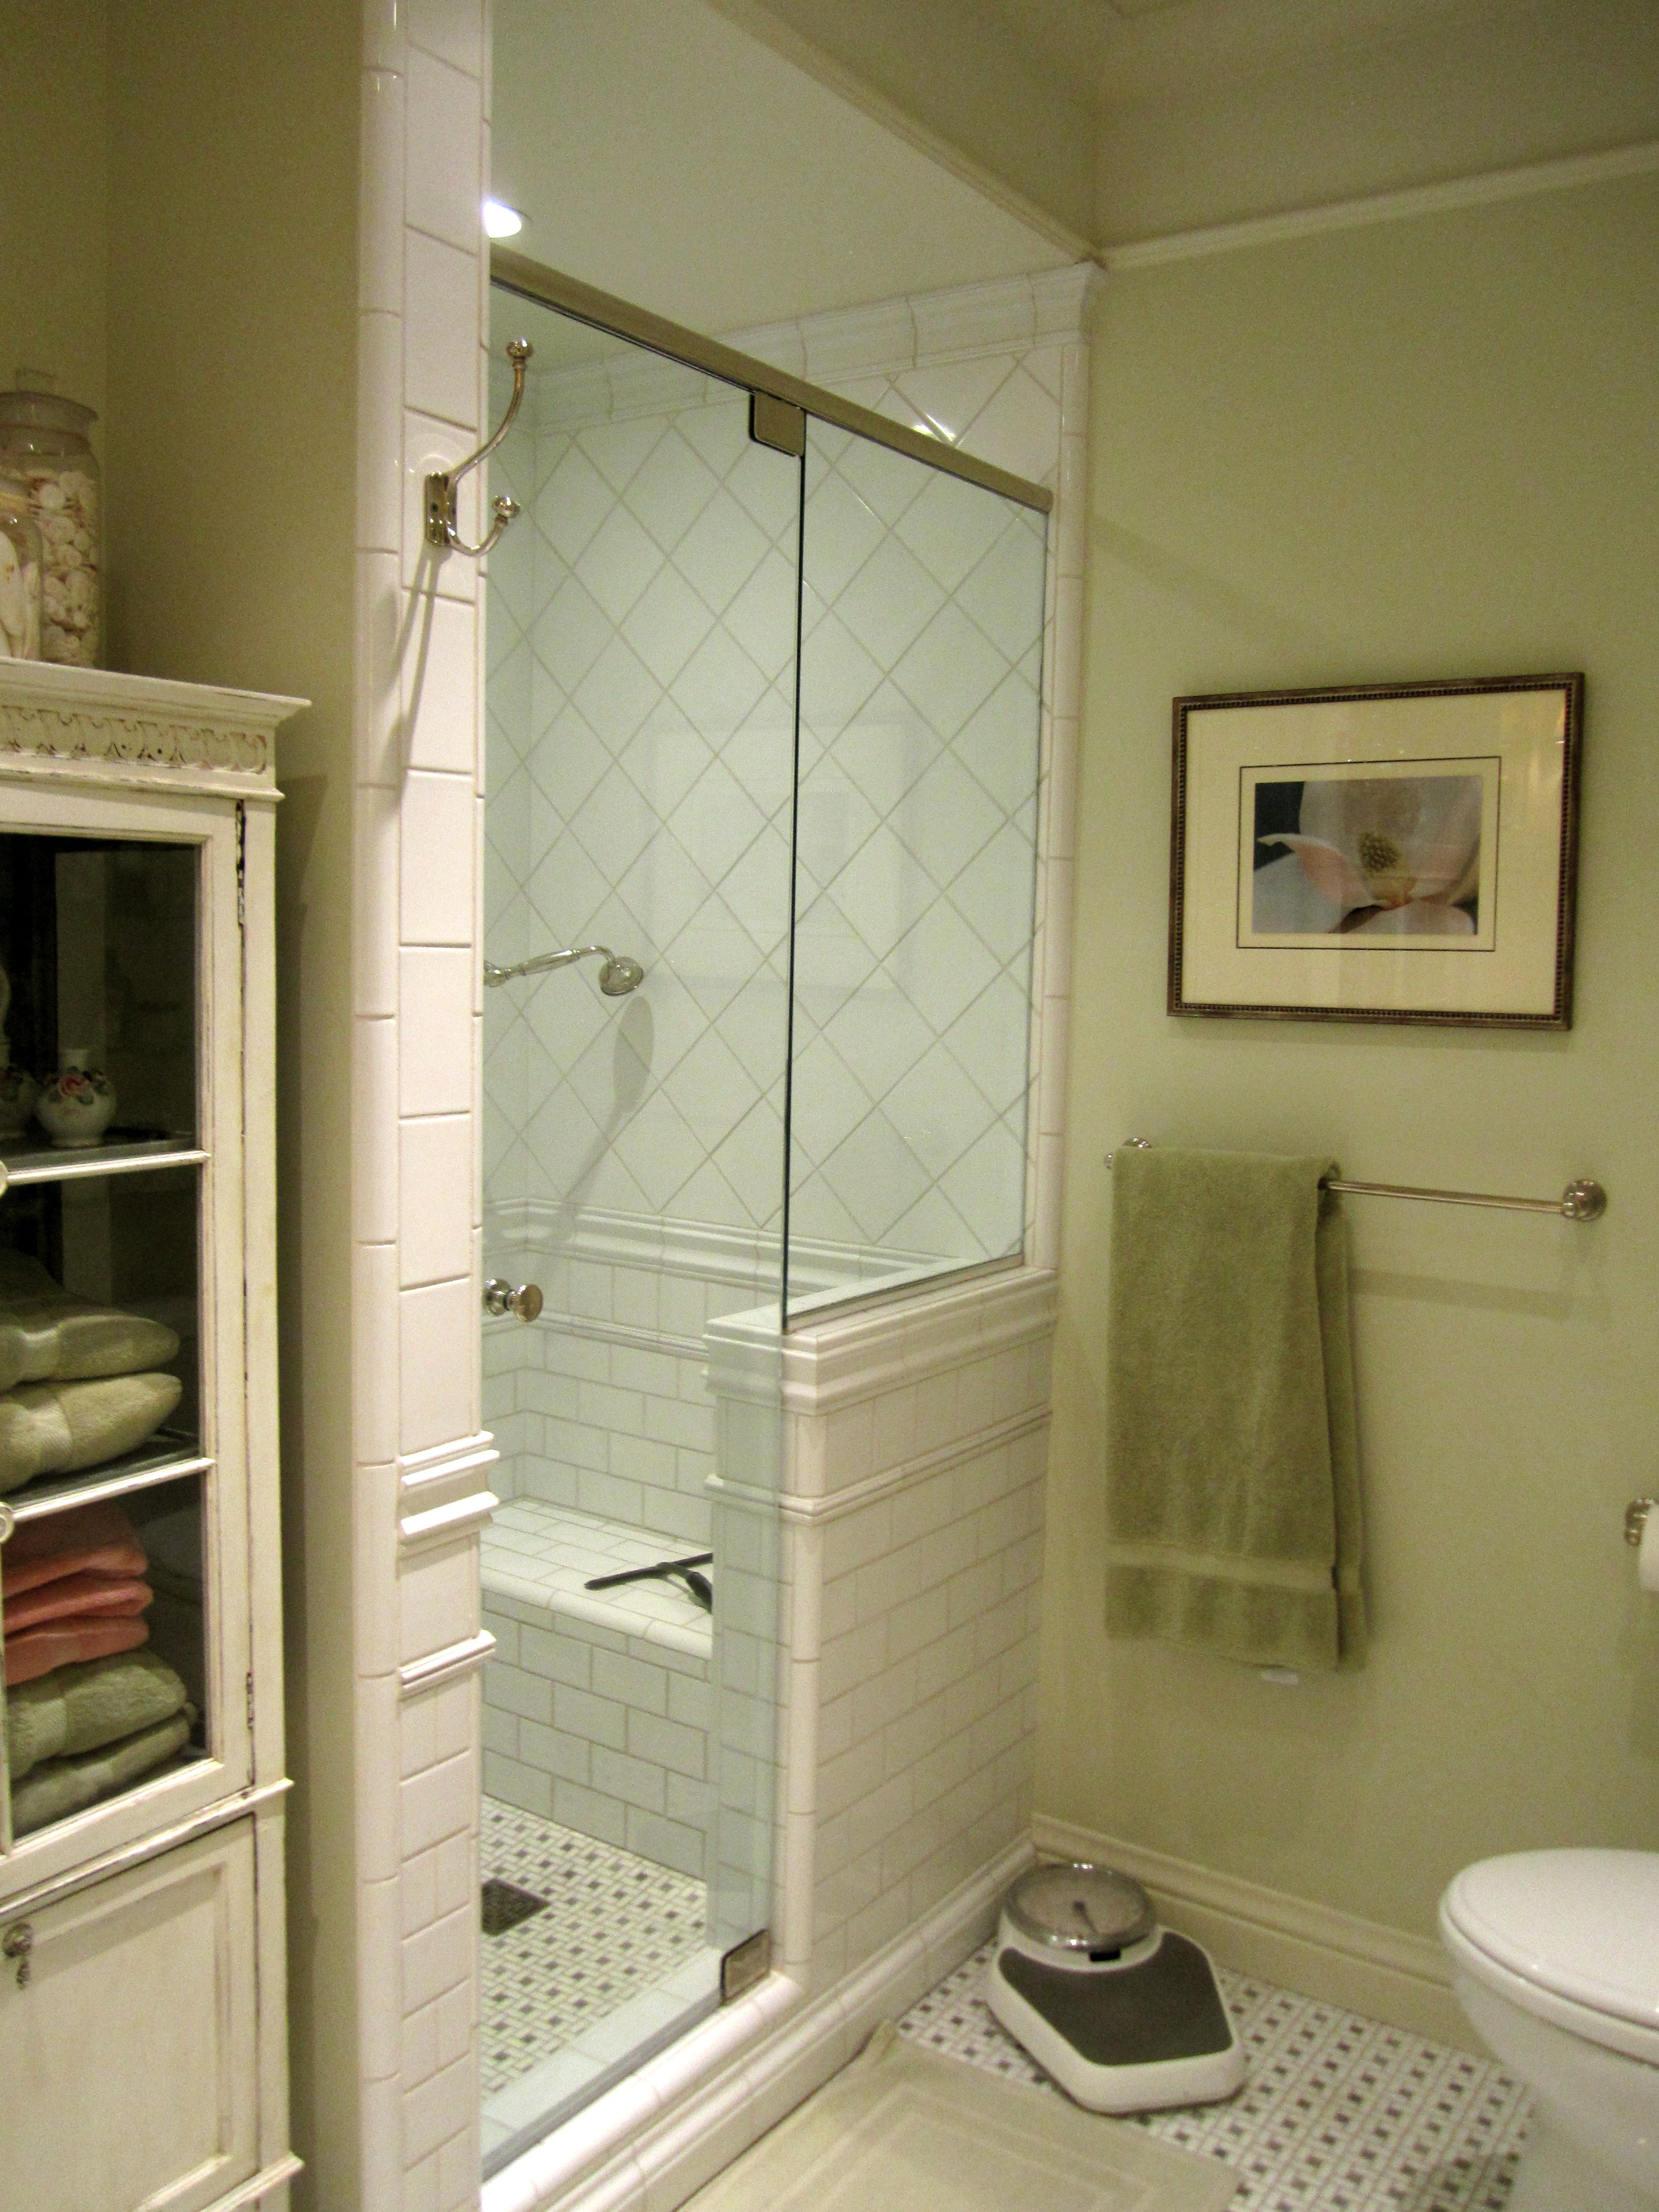 Tile In Shower And Edging Use Marble And White Ceramic Home Decor